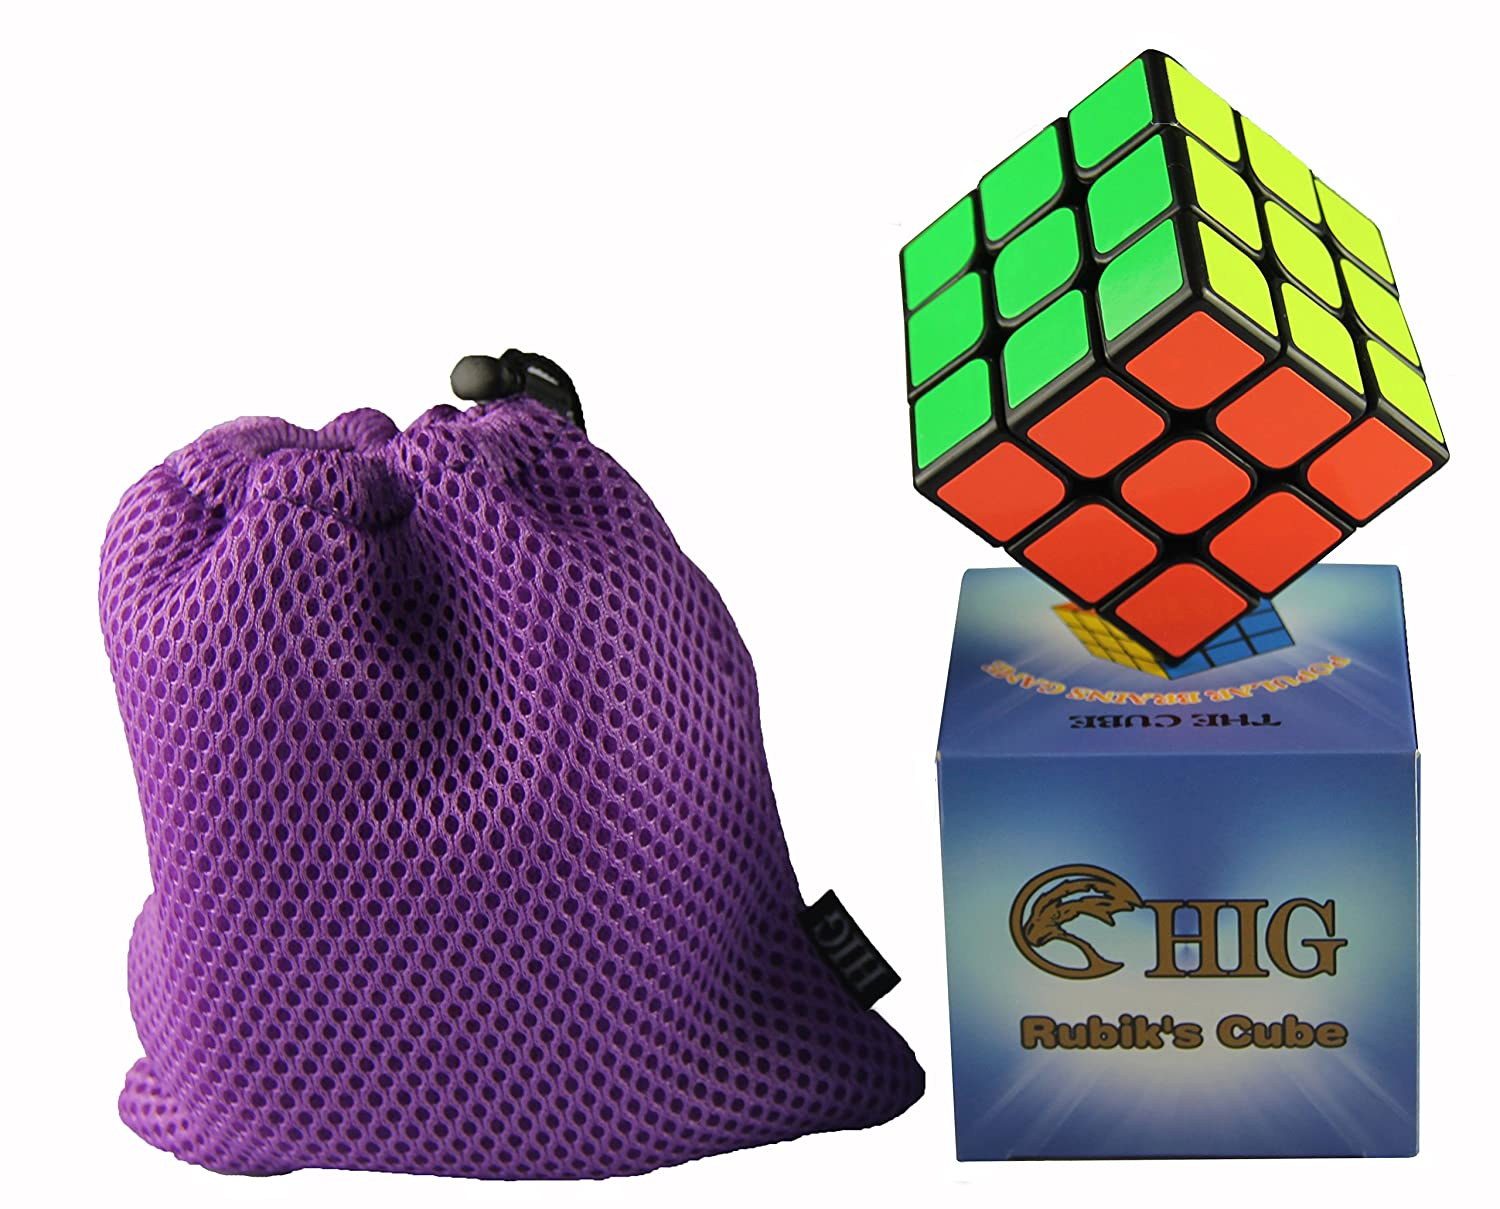 HIG Rubiks Cube is An interesting Puzzle Cube - 3 x 3 Speed Cube(Black)